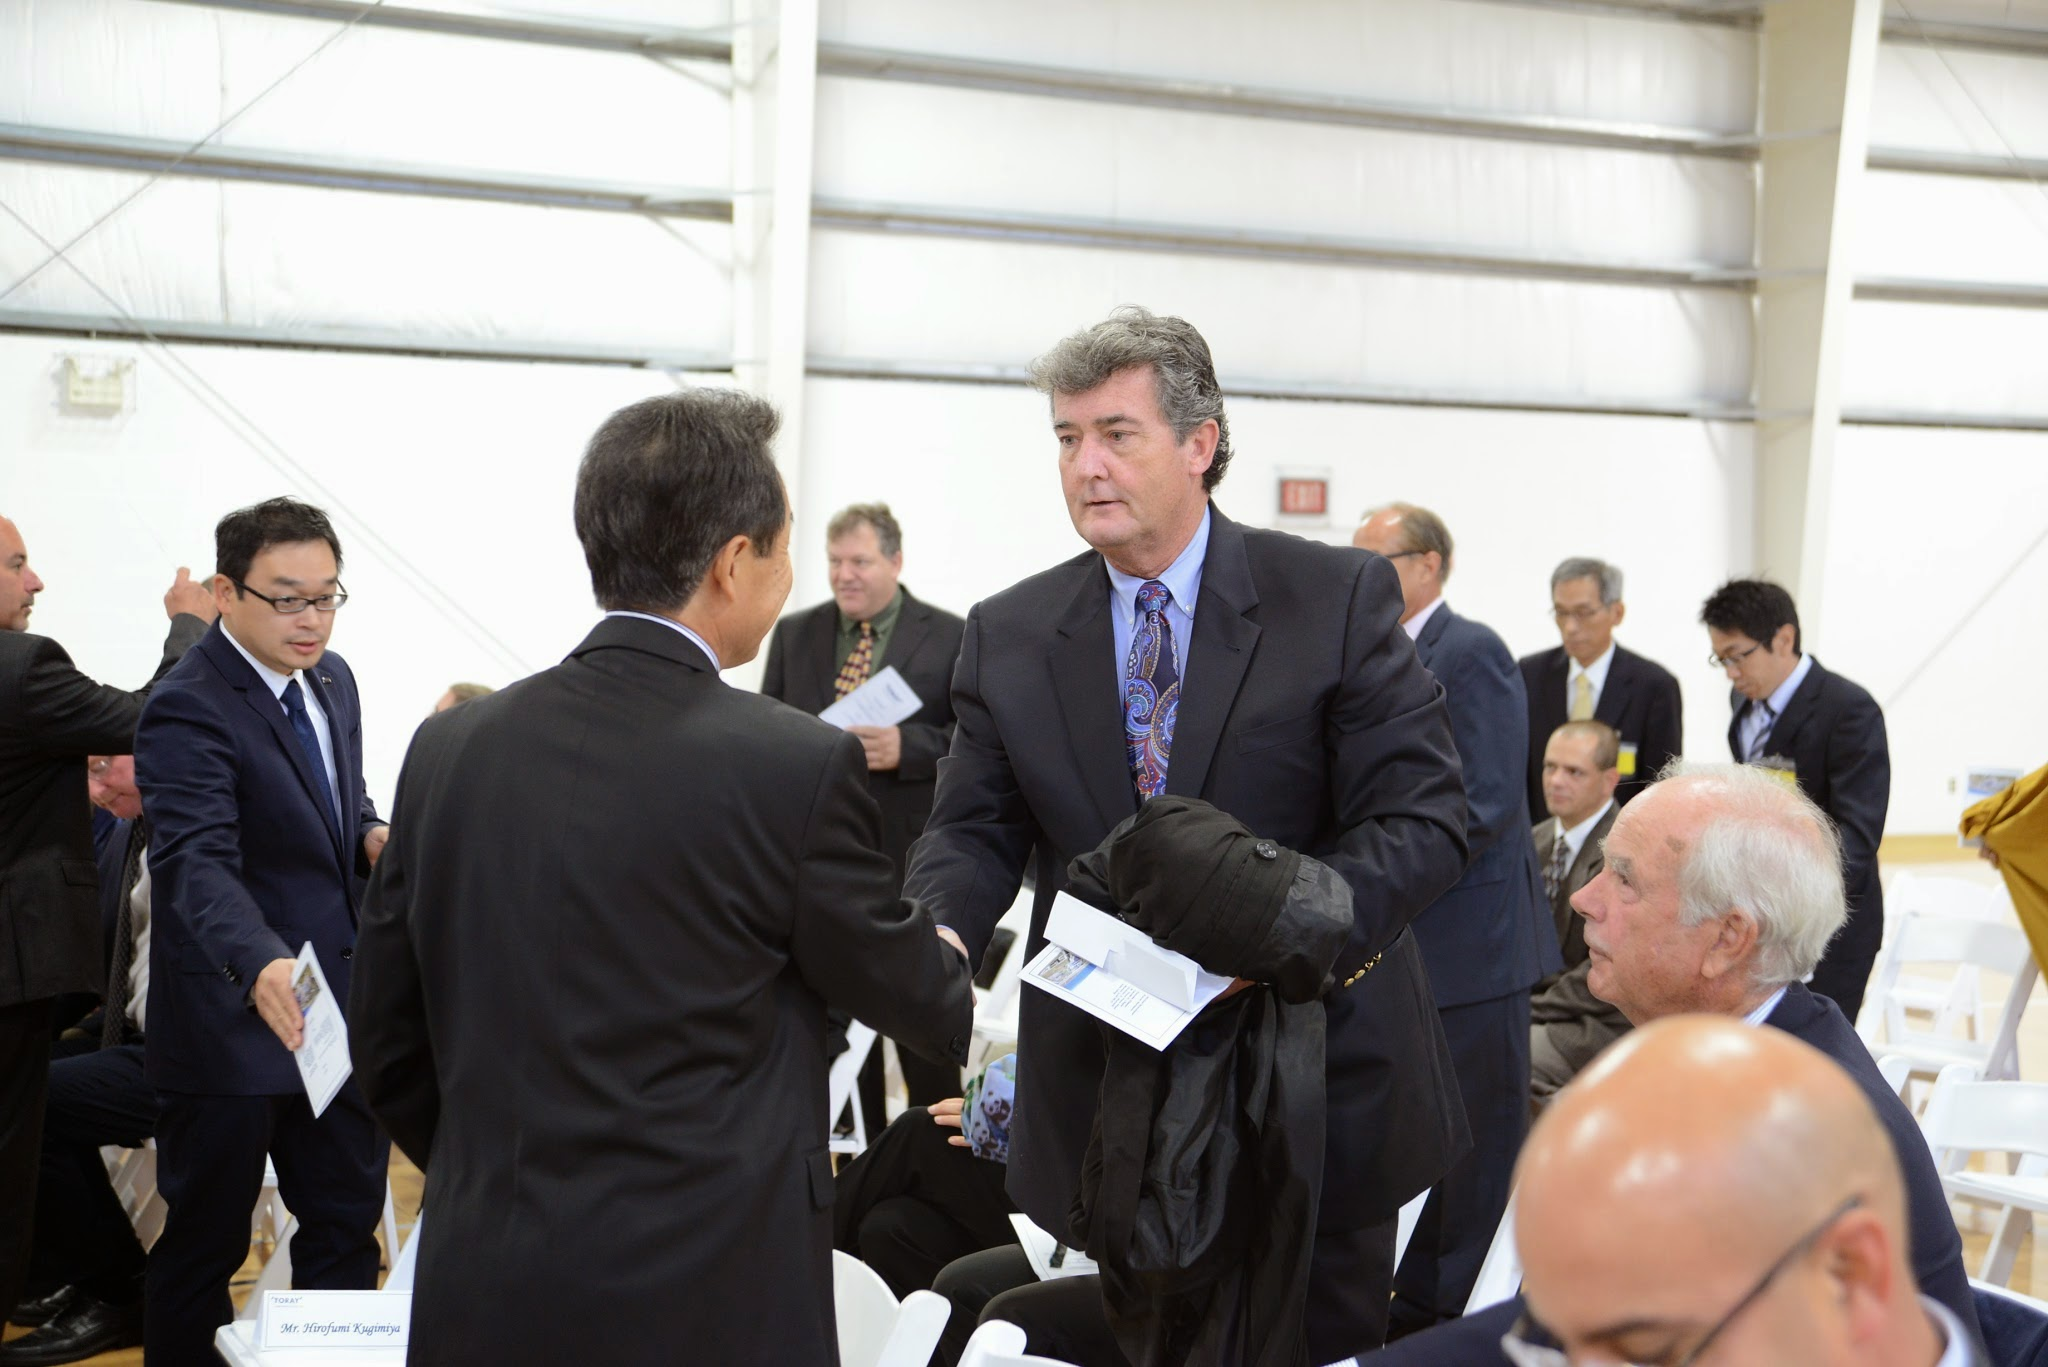 Photo: Rep. Robert Craven greets officials from Toray Plastics at the commissioning of the company's co-generation facility in North Kingstown on September 25, 2014.